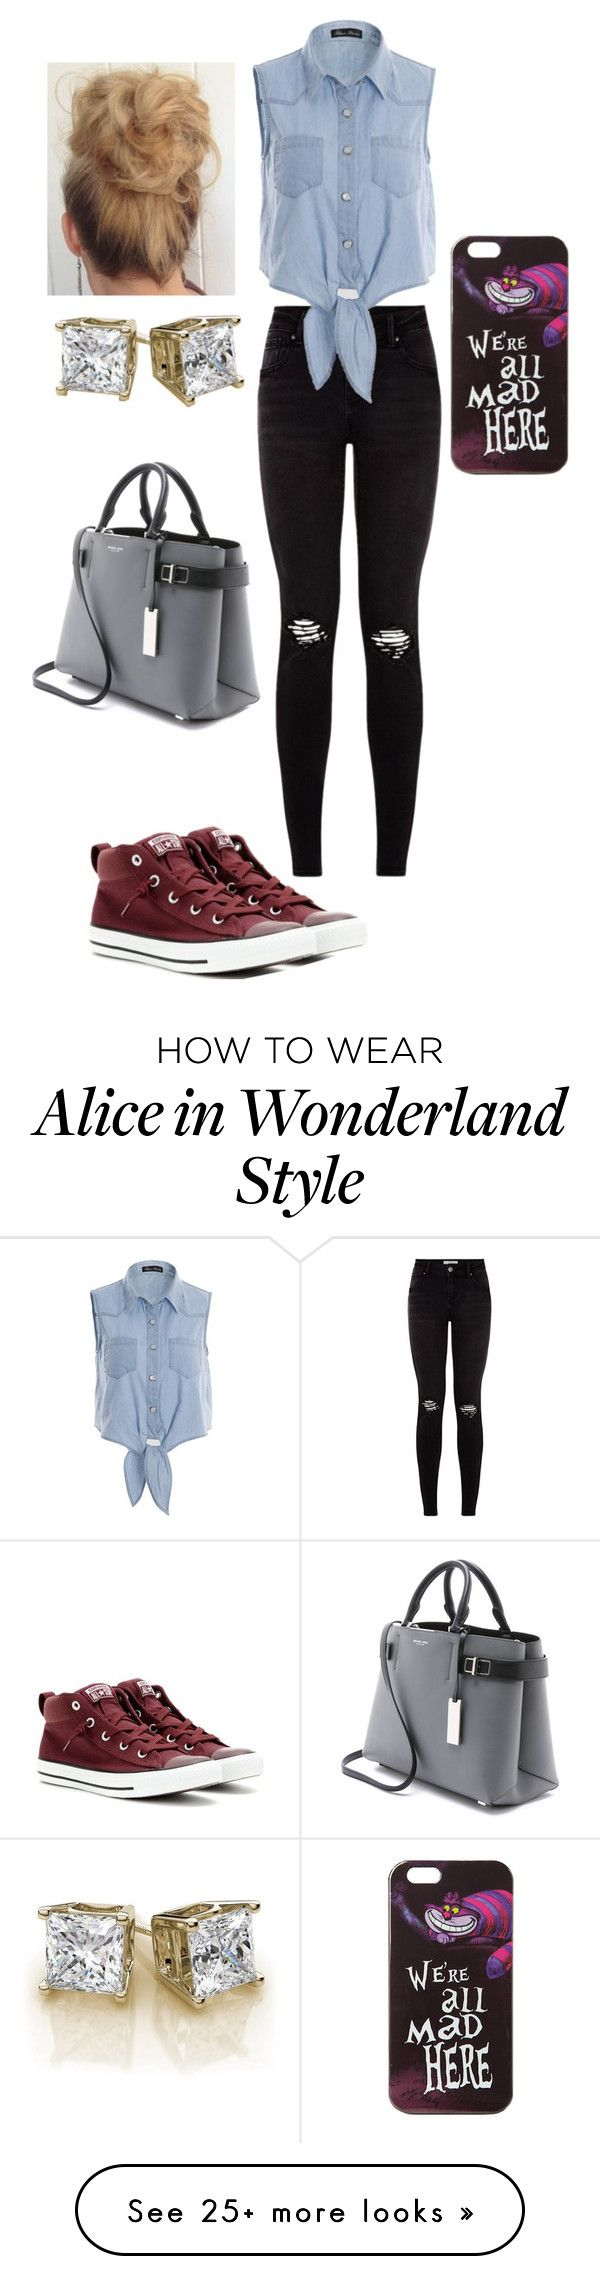 """""""Untitled #45"""" by crashwegener on Polyvore featuring Converse, Michael Kors and Disney"""